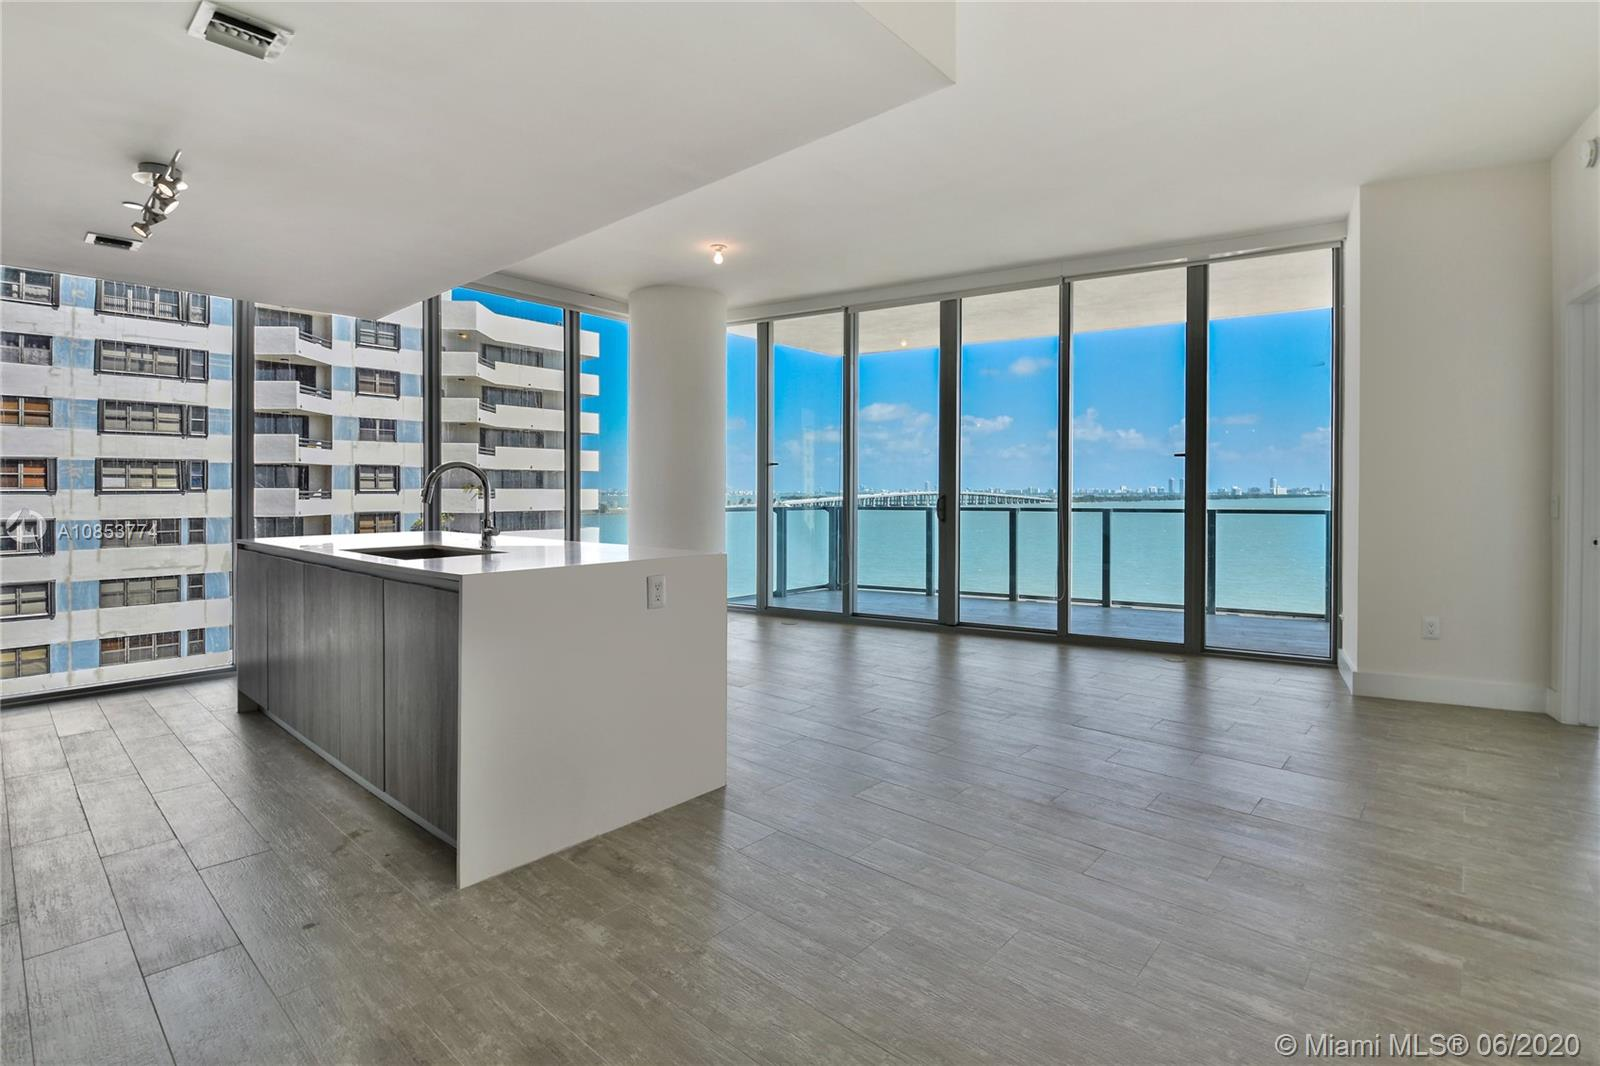 Photo of 2900 NE 7 Ave #802 listing for Sale